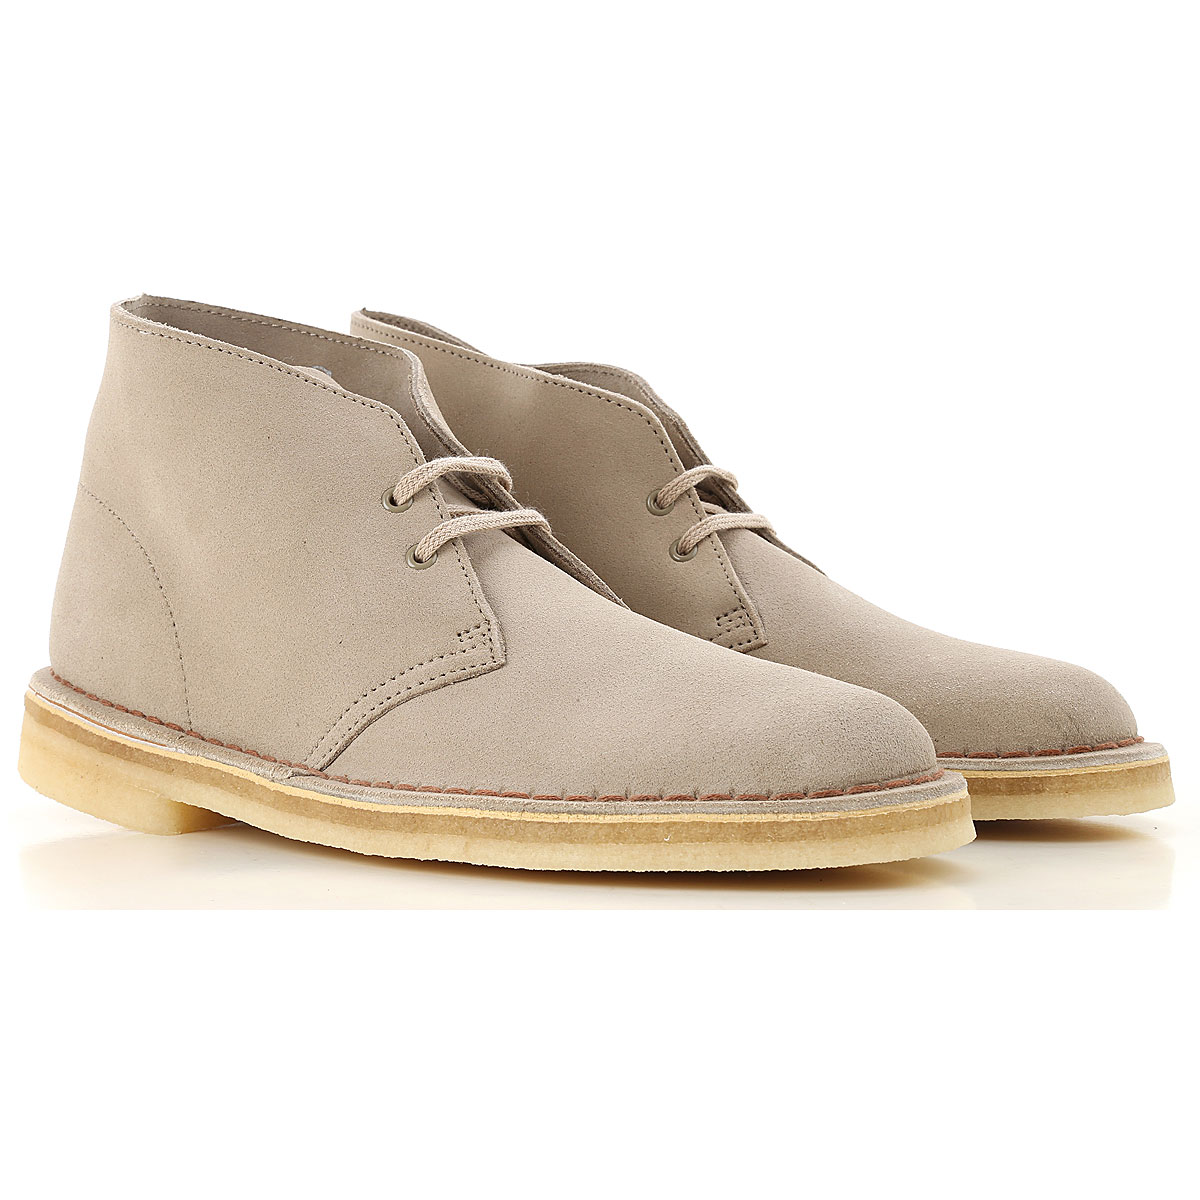 Image of Clarks Desert Boots Chukka for Men, Sand, suede, 2017, 10 11 7 8 9